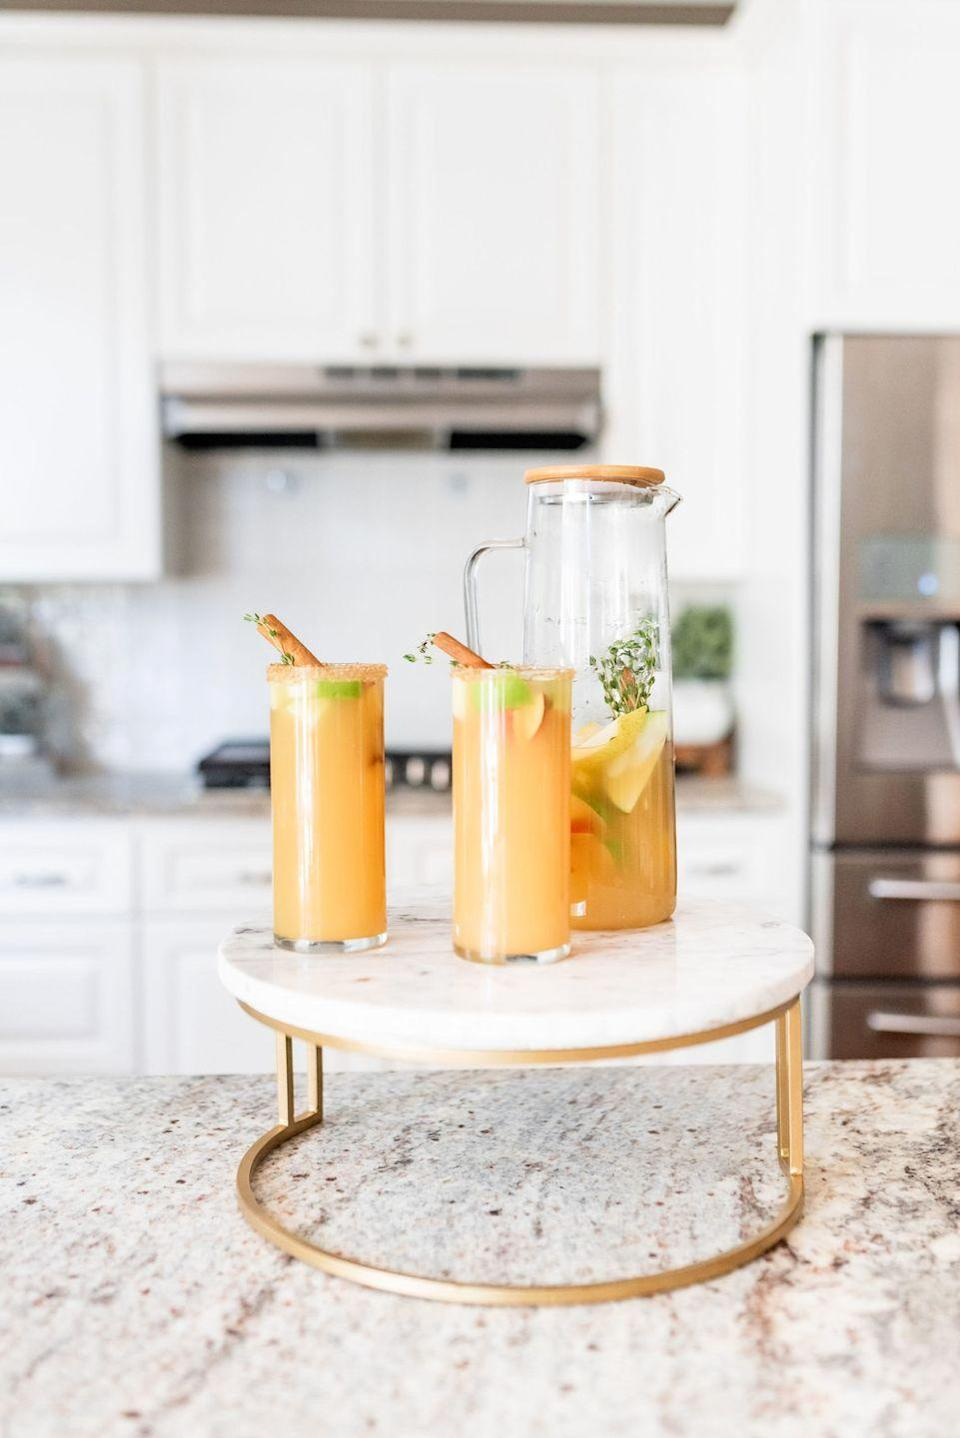 """<p>You'll want to have this autumnal sangria by your side all fall long. Depending on how you're feeling, there are virgin and non-virgin instructions.</p><p><strong>Get the recipe at <a href=""""https://www.rosalynndaniels.com/easy-apple-cider-sangria-recipe/"""" rel=""""nofollow noopener"""" target=""""_blank"""" data-ylk=""""slk:Rosalynn Daniels"""" class=""""link rapid-noclick-resp"""">Rosalynn Daniels</a>.</strong></p><p><strong><a class=""""link rapid-noclick-resp"""" href=""""https://www.amazon.com/Youngever-Plastic-Pitcher-Sangria-Lemonade/dp/B08XSP76FS/?tag=syn-yahoo-20&ascsubtag=%5Bartid%7C2164.g.36792938%5Bsrc%7Cyahoo-us"""" rel=""""nofollow noopener"""" target=""""_blank"""" data-ylk=""""slk:SHOP PITCHERS"""">SHOP PITCHERS</a><br></strong></p>"""